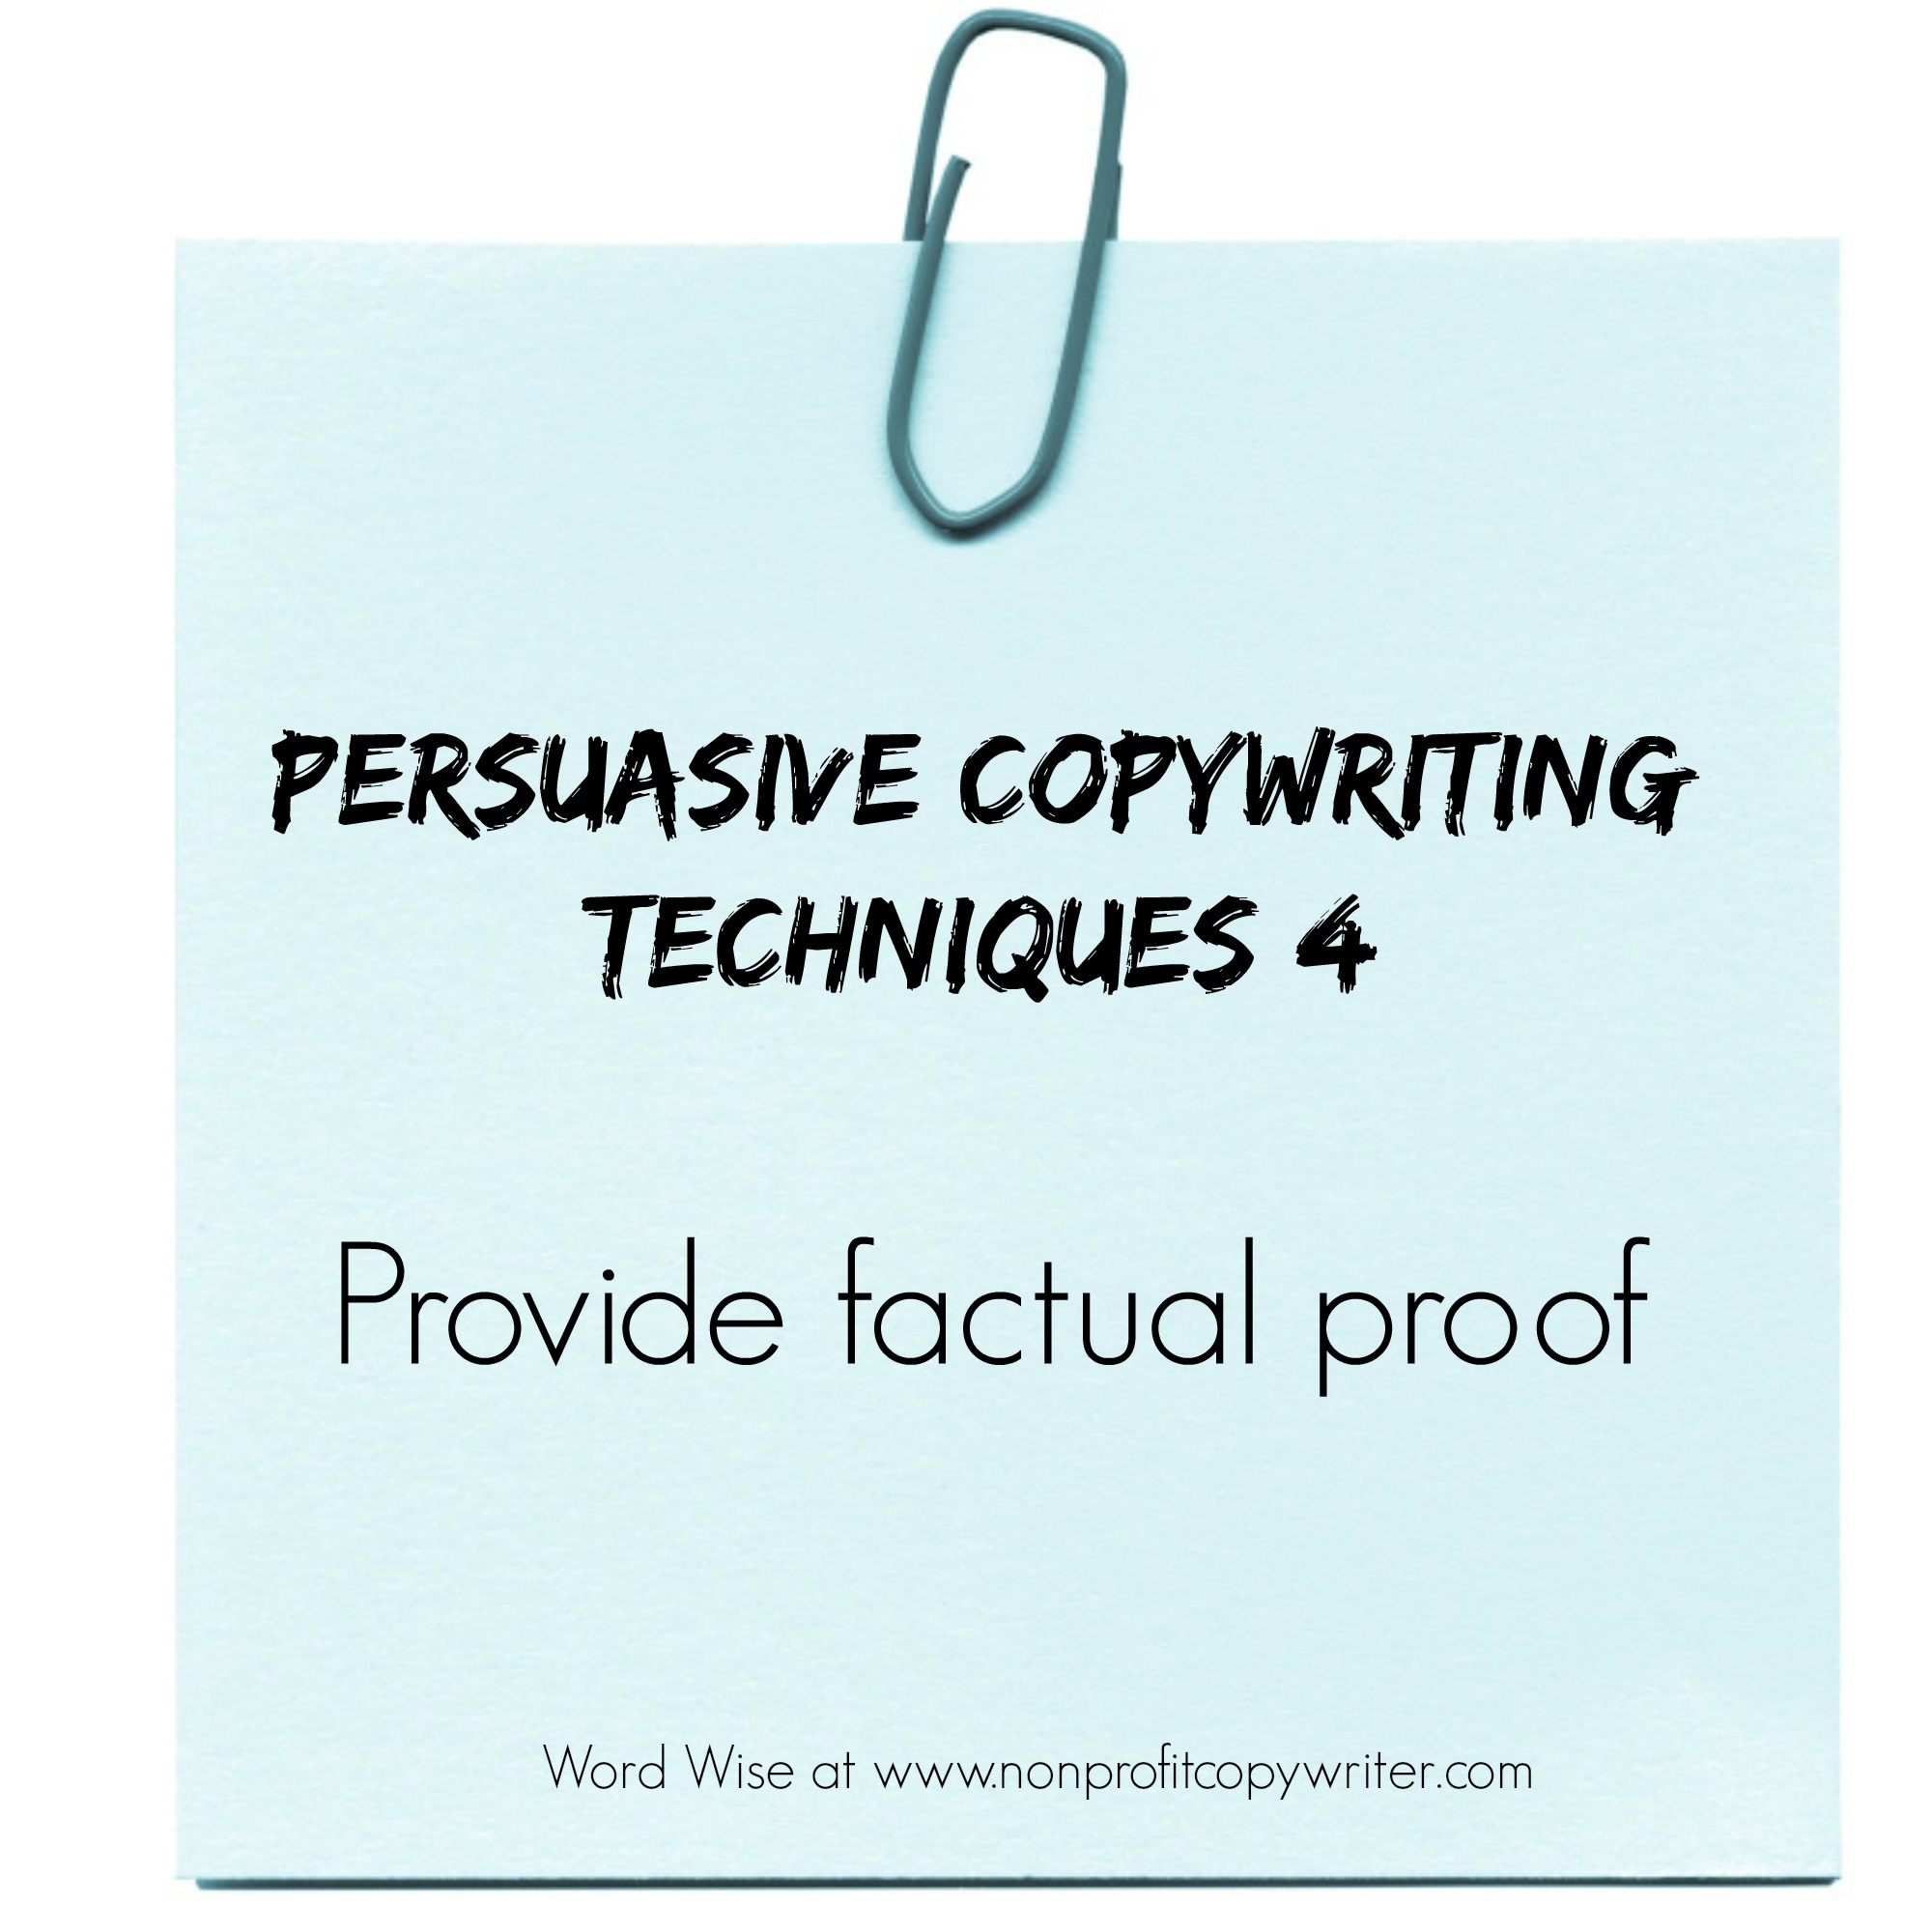 Persuasive Copywriting Techniques 4: Provide Factual Proof with Word Wise at Nonprofit Copywriter